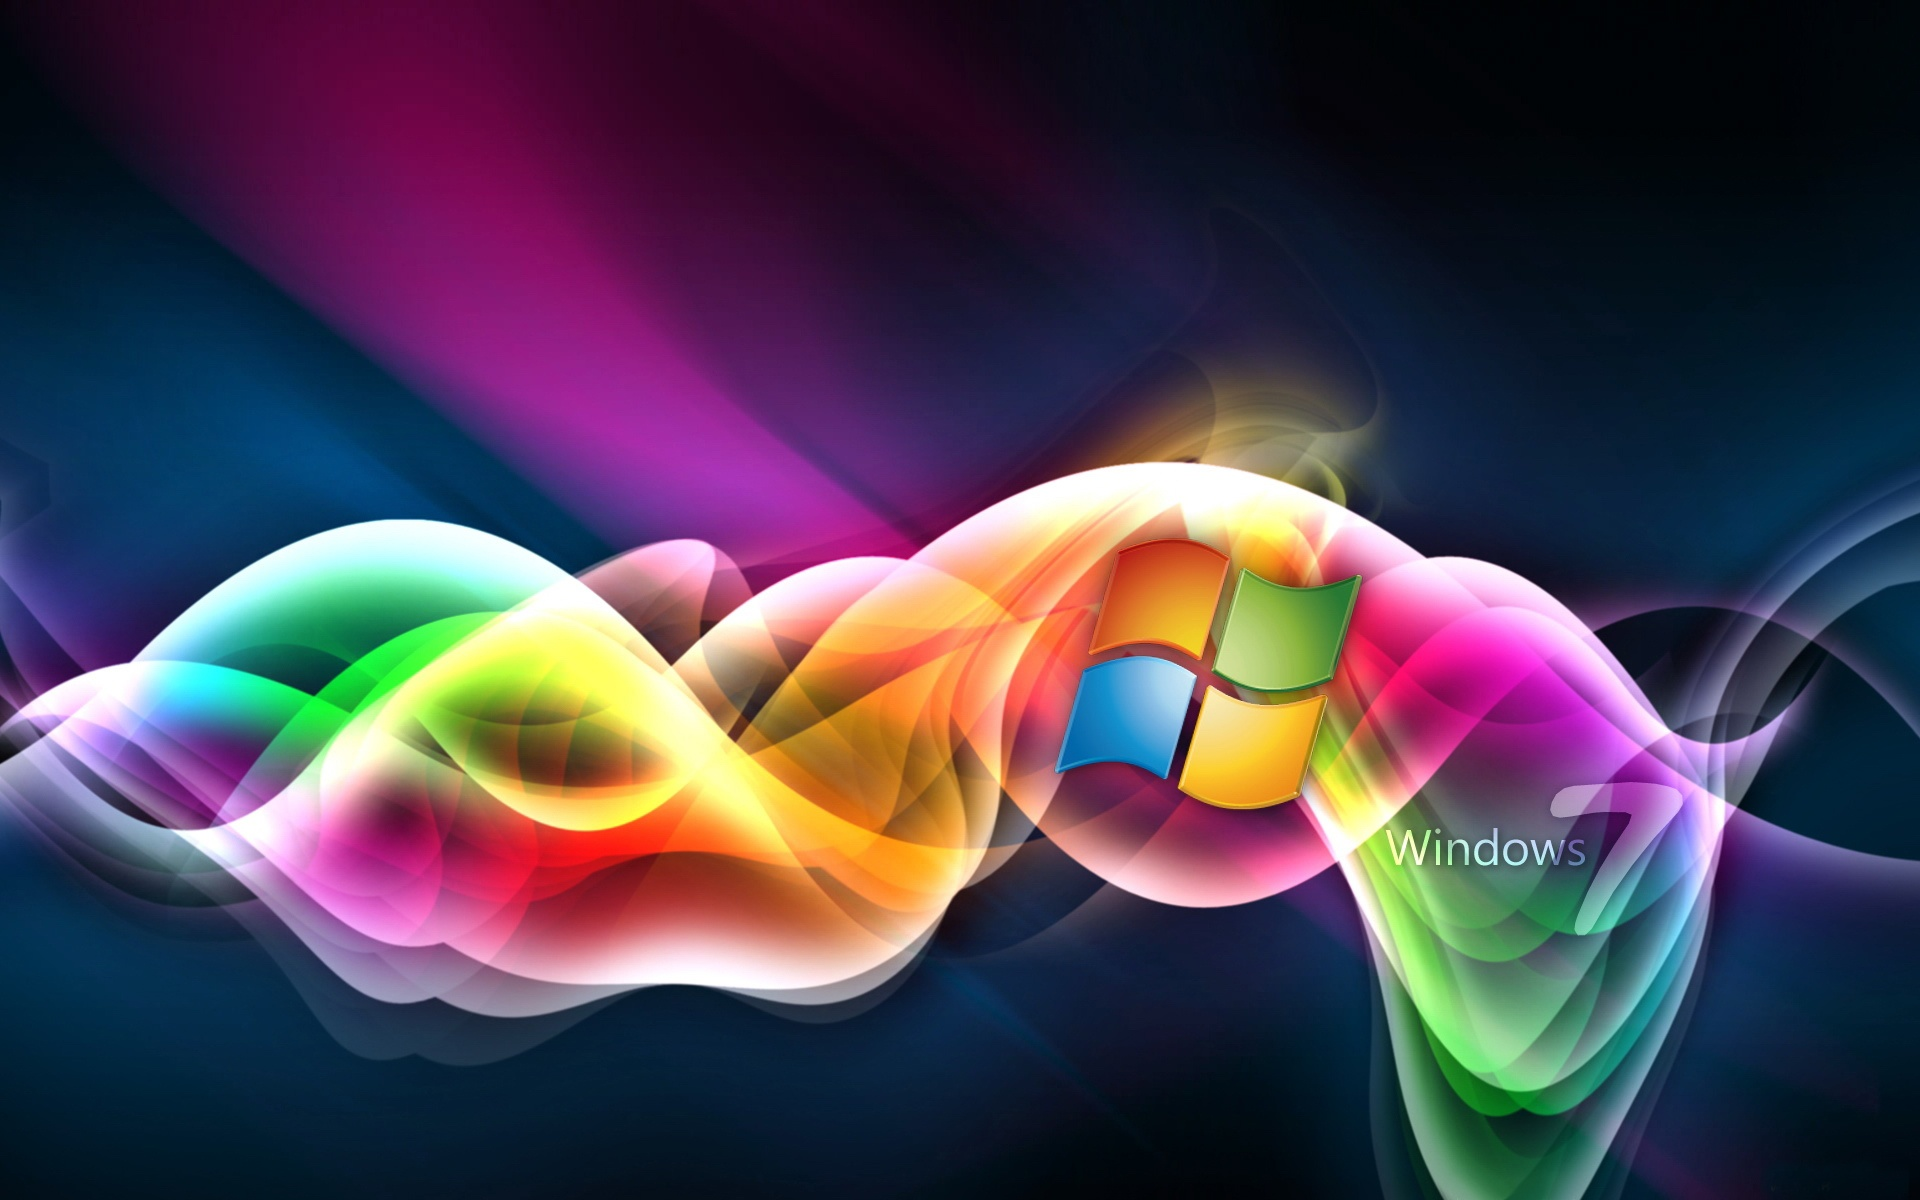 ... Wallpapers, Windows 7 Backgrounds, Windows 7 Free HD Wallpapers